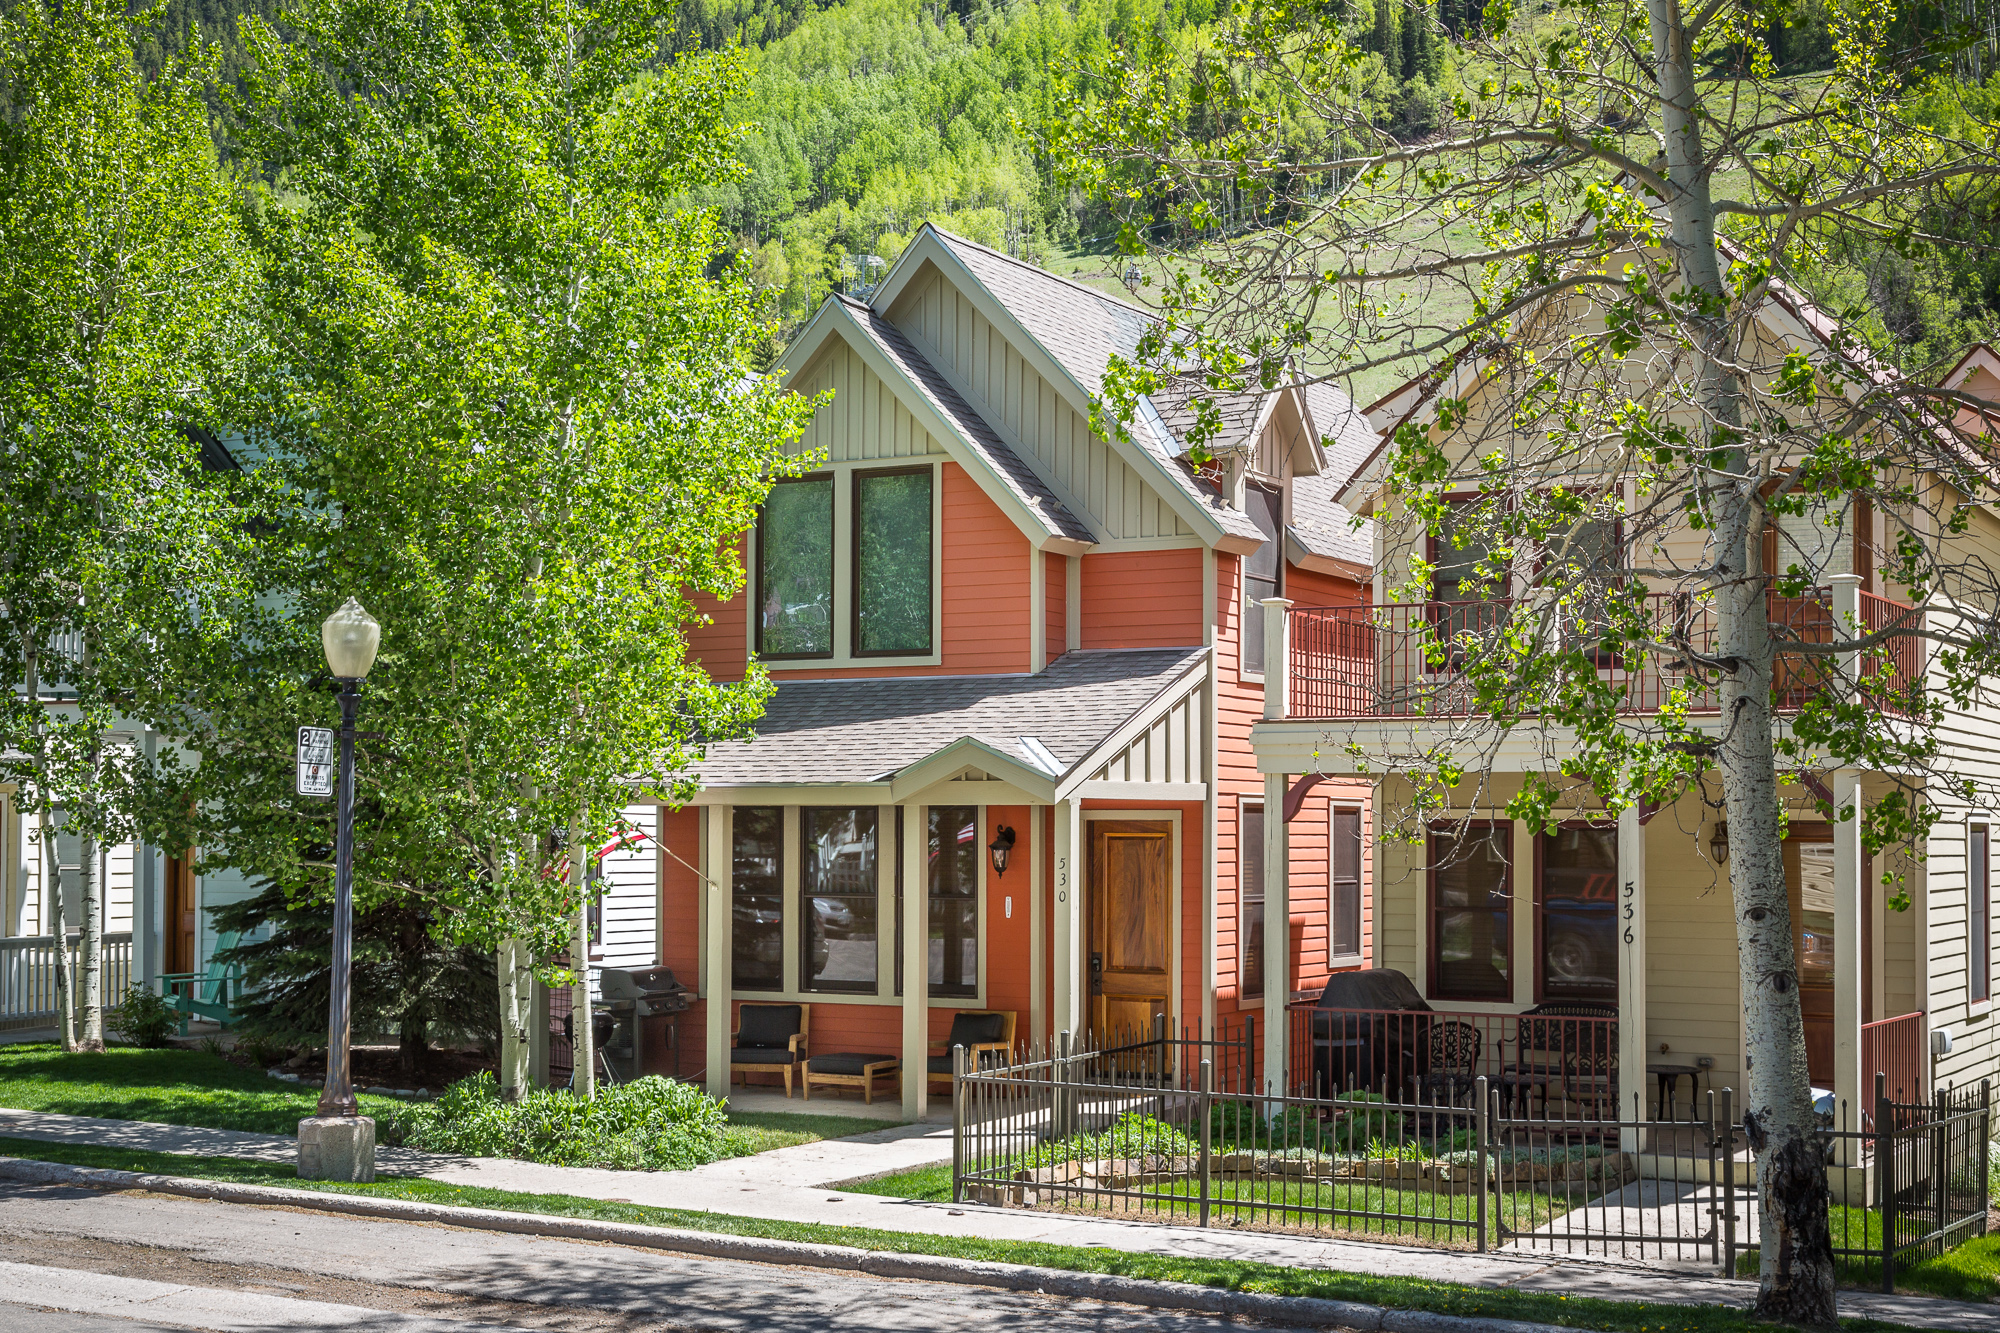 530 West Pacific - 3 Bd, 3.5 Ba - Sleeps 6 - Deluxe Townhome